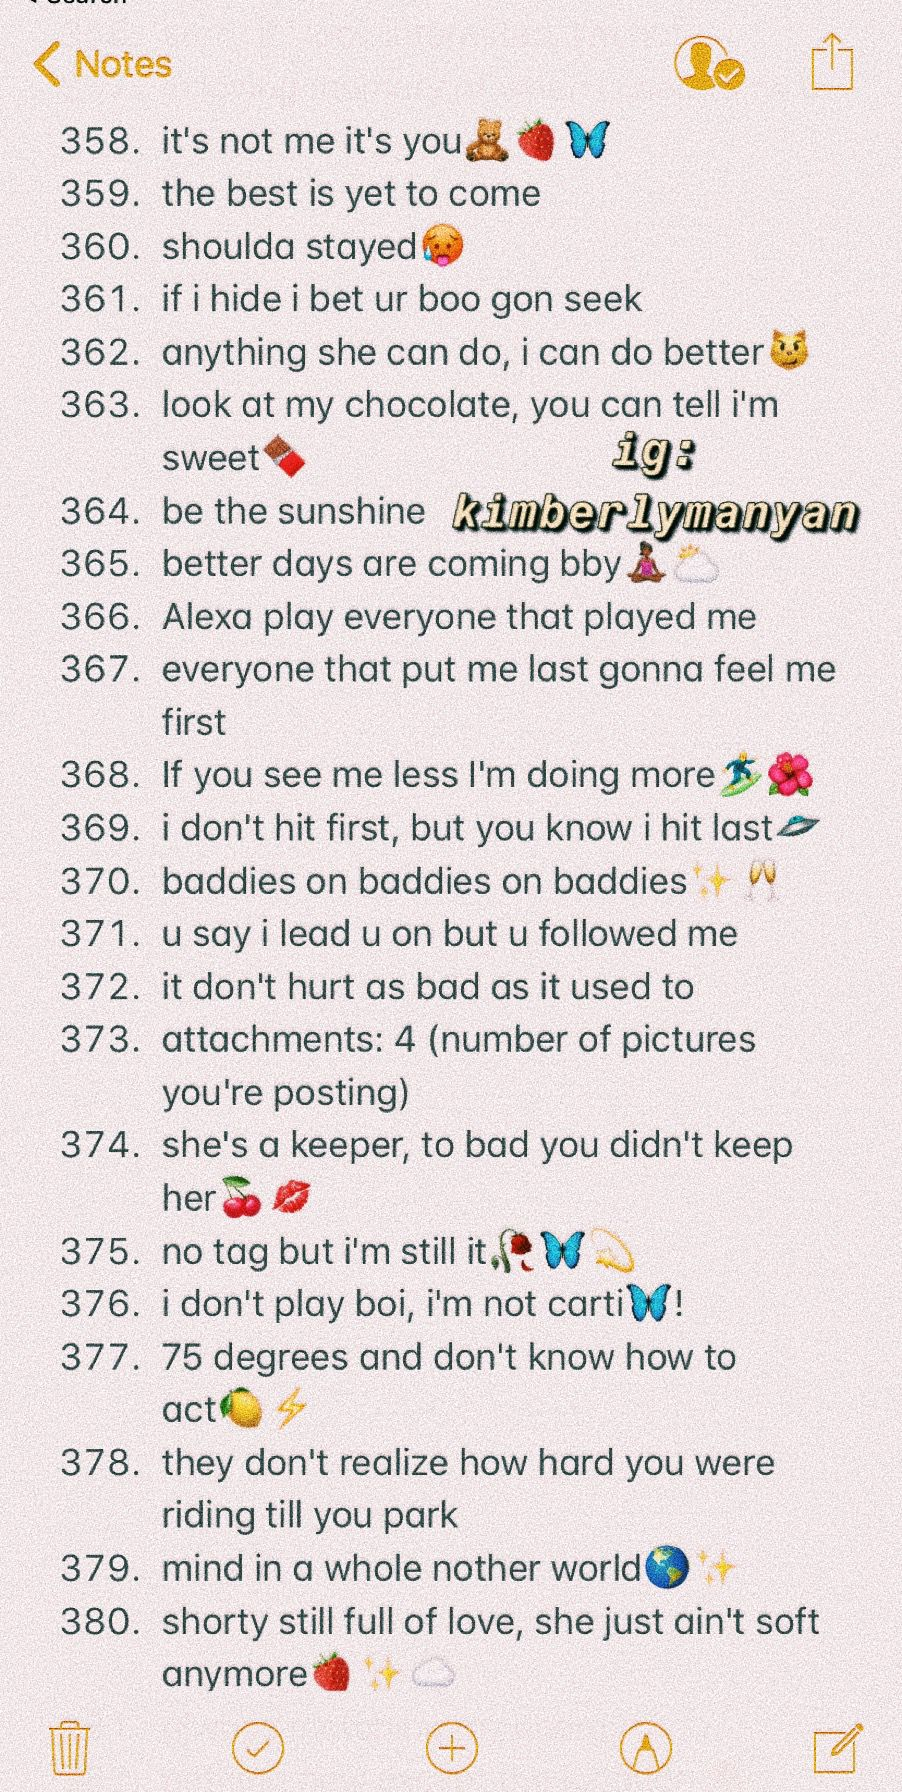 Ig Kimberlymanyan Ig Graphicsbykim Funny Instagram Captions Instagram Quotes Instagram Quotes Captions